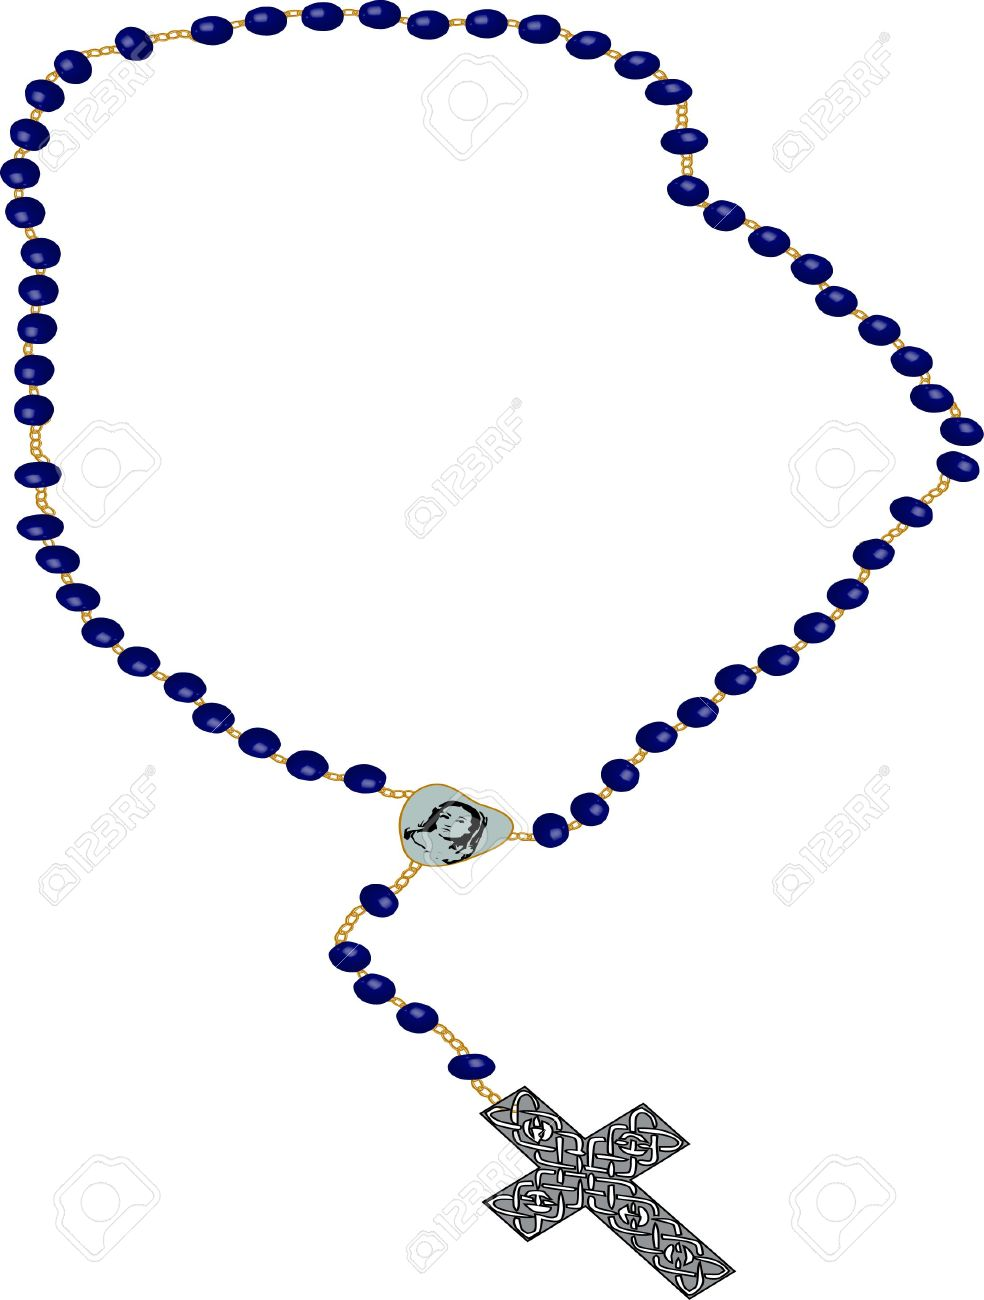 Rosary Clip-art Illustration On White Ba-rosary clip-art illustration on white background. Stock Illustration - 3425422-13